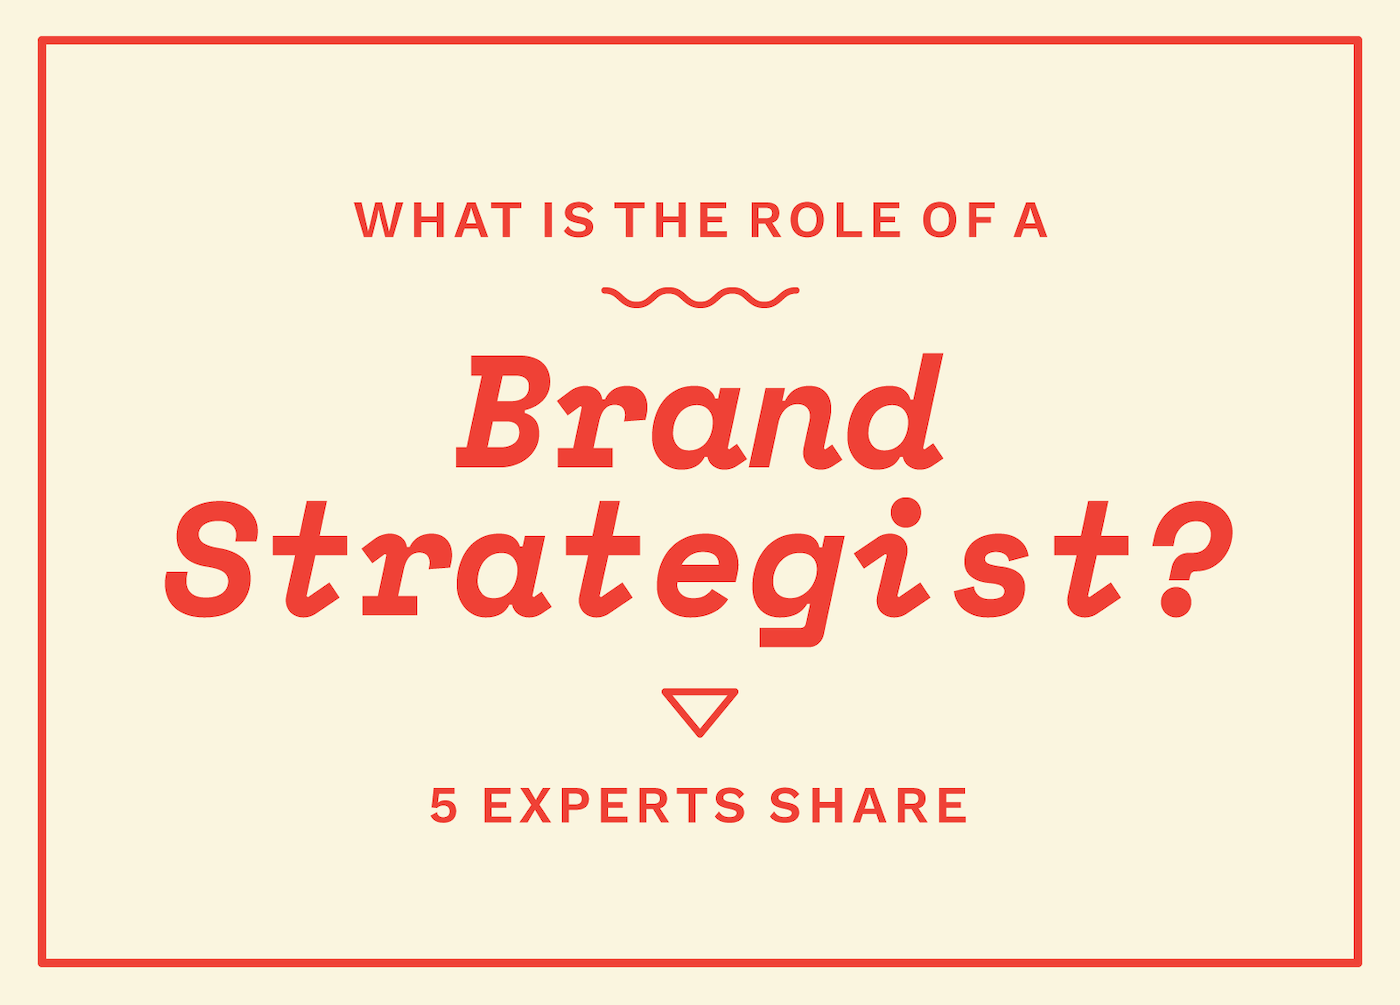 What is the role of a Brand Strategist? Brand strategist